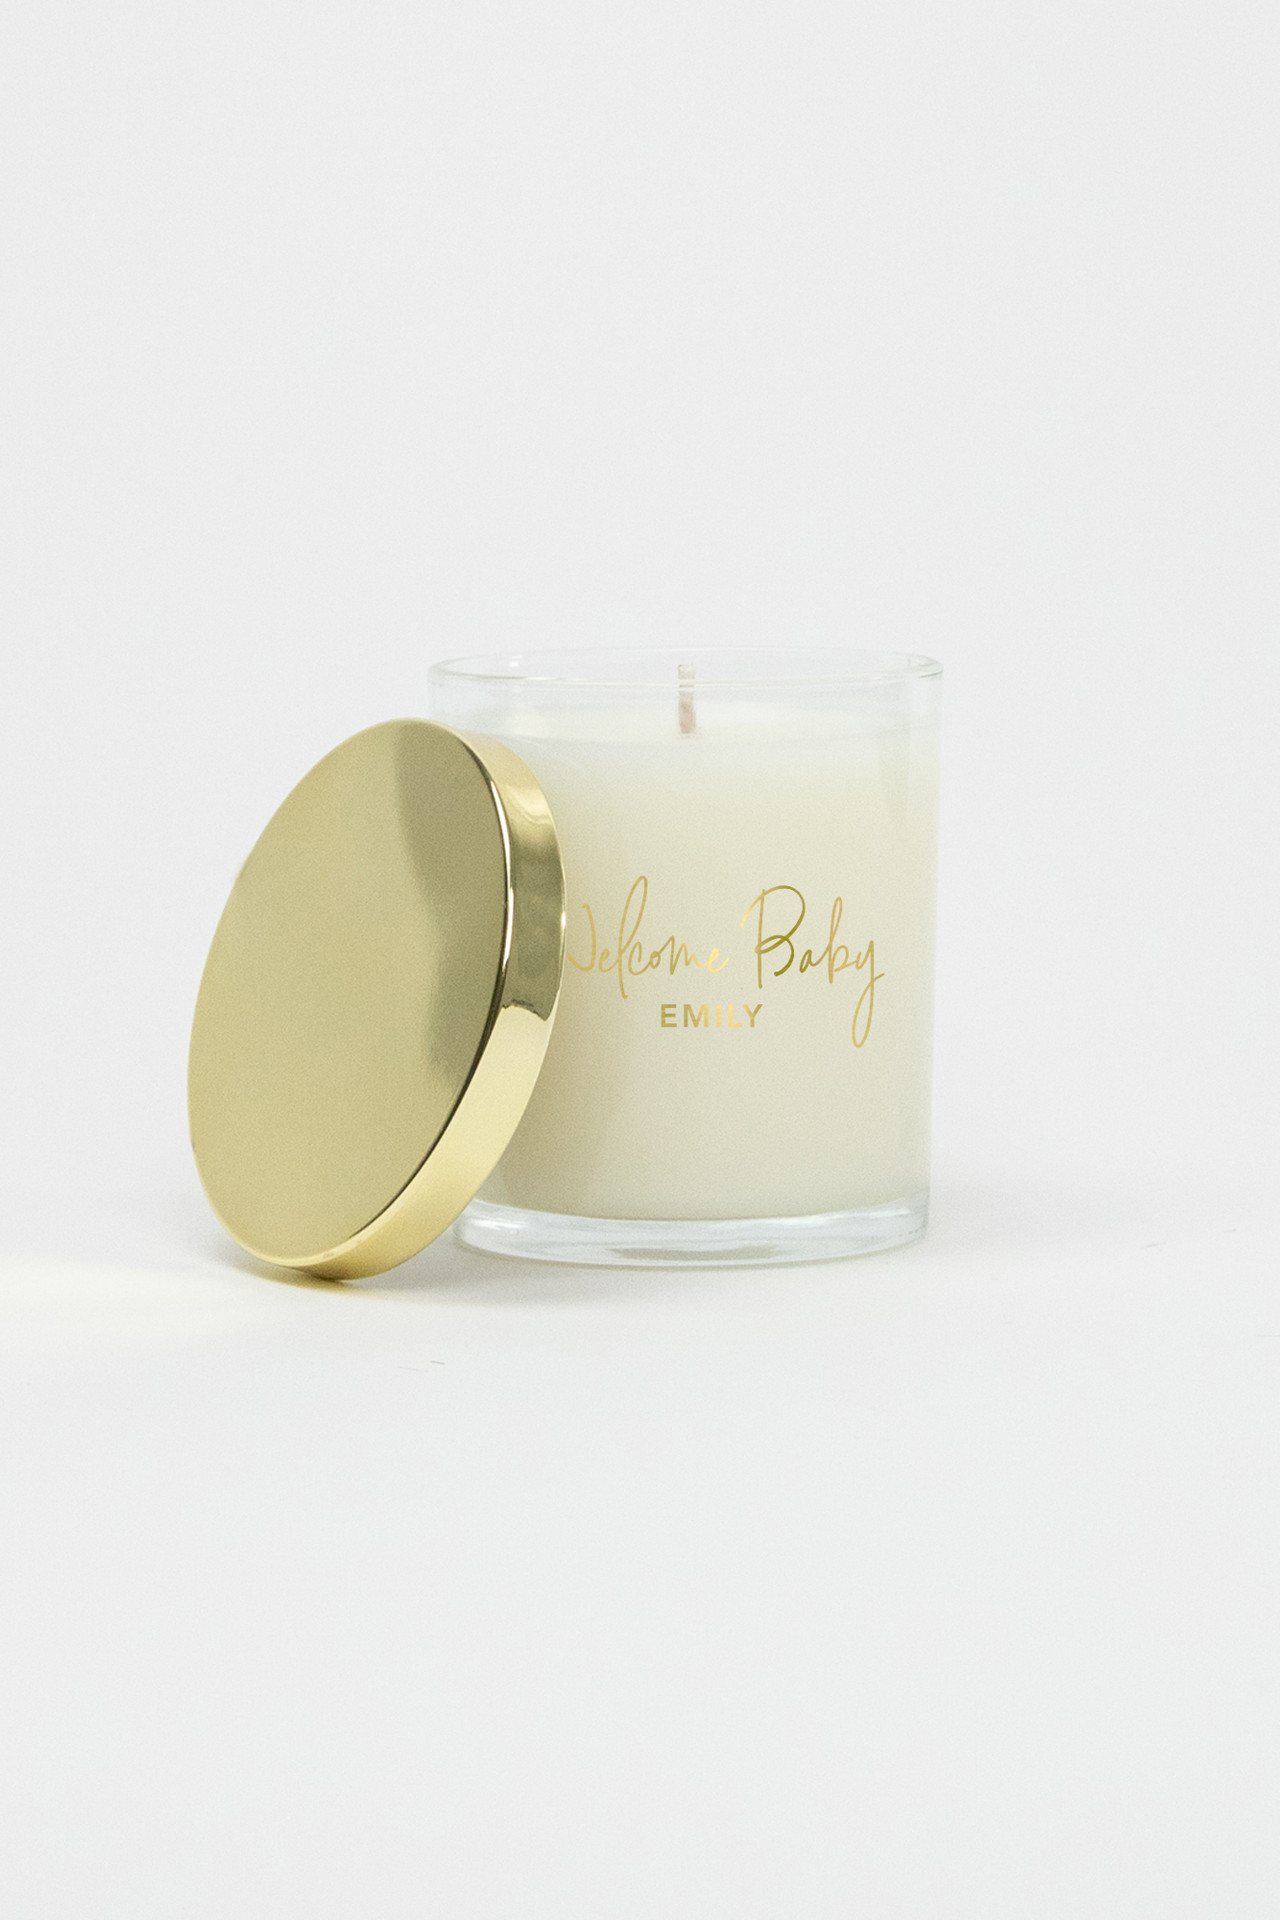 Celebration Glass Soy Candle - Welcome Baby (Gold)